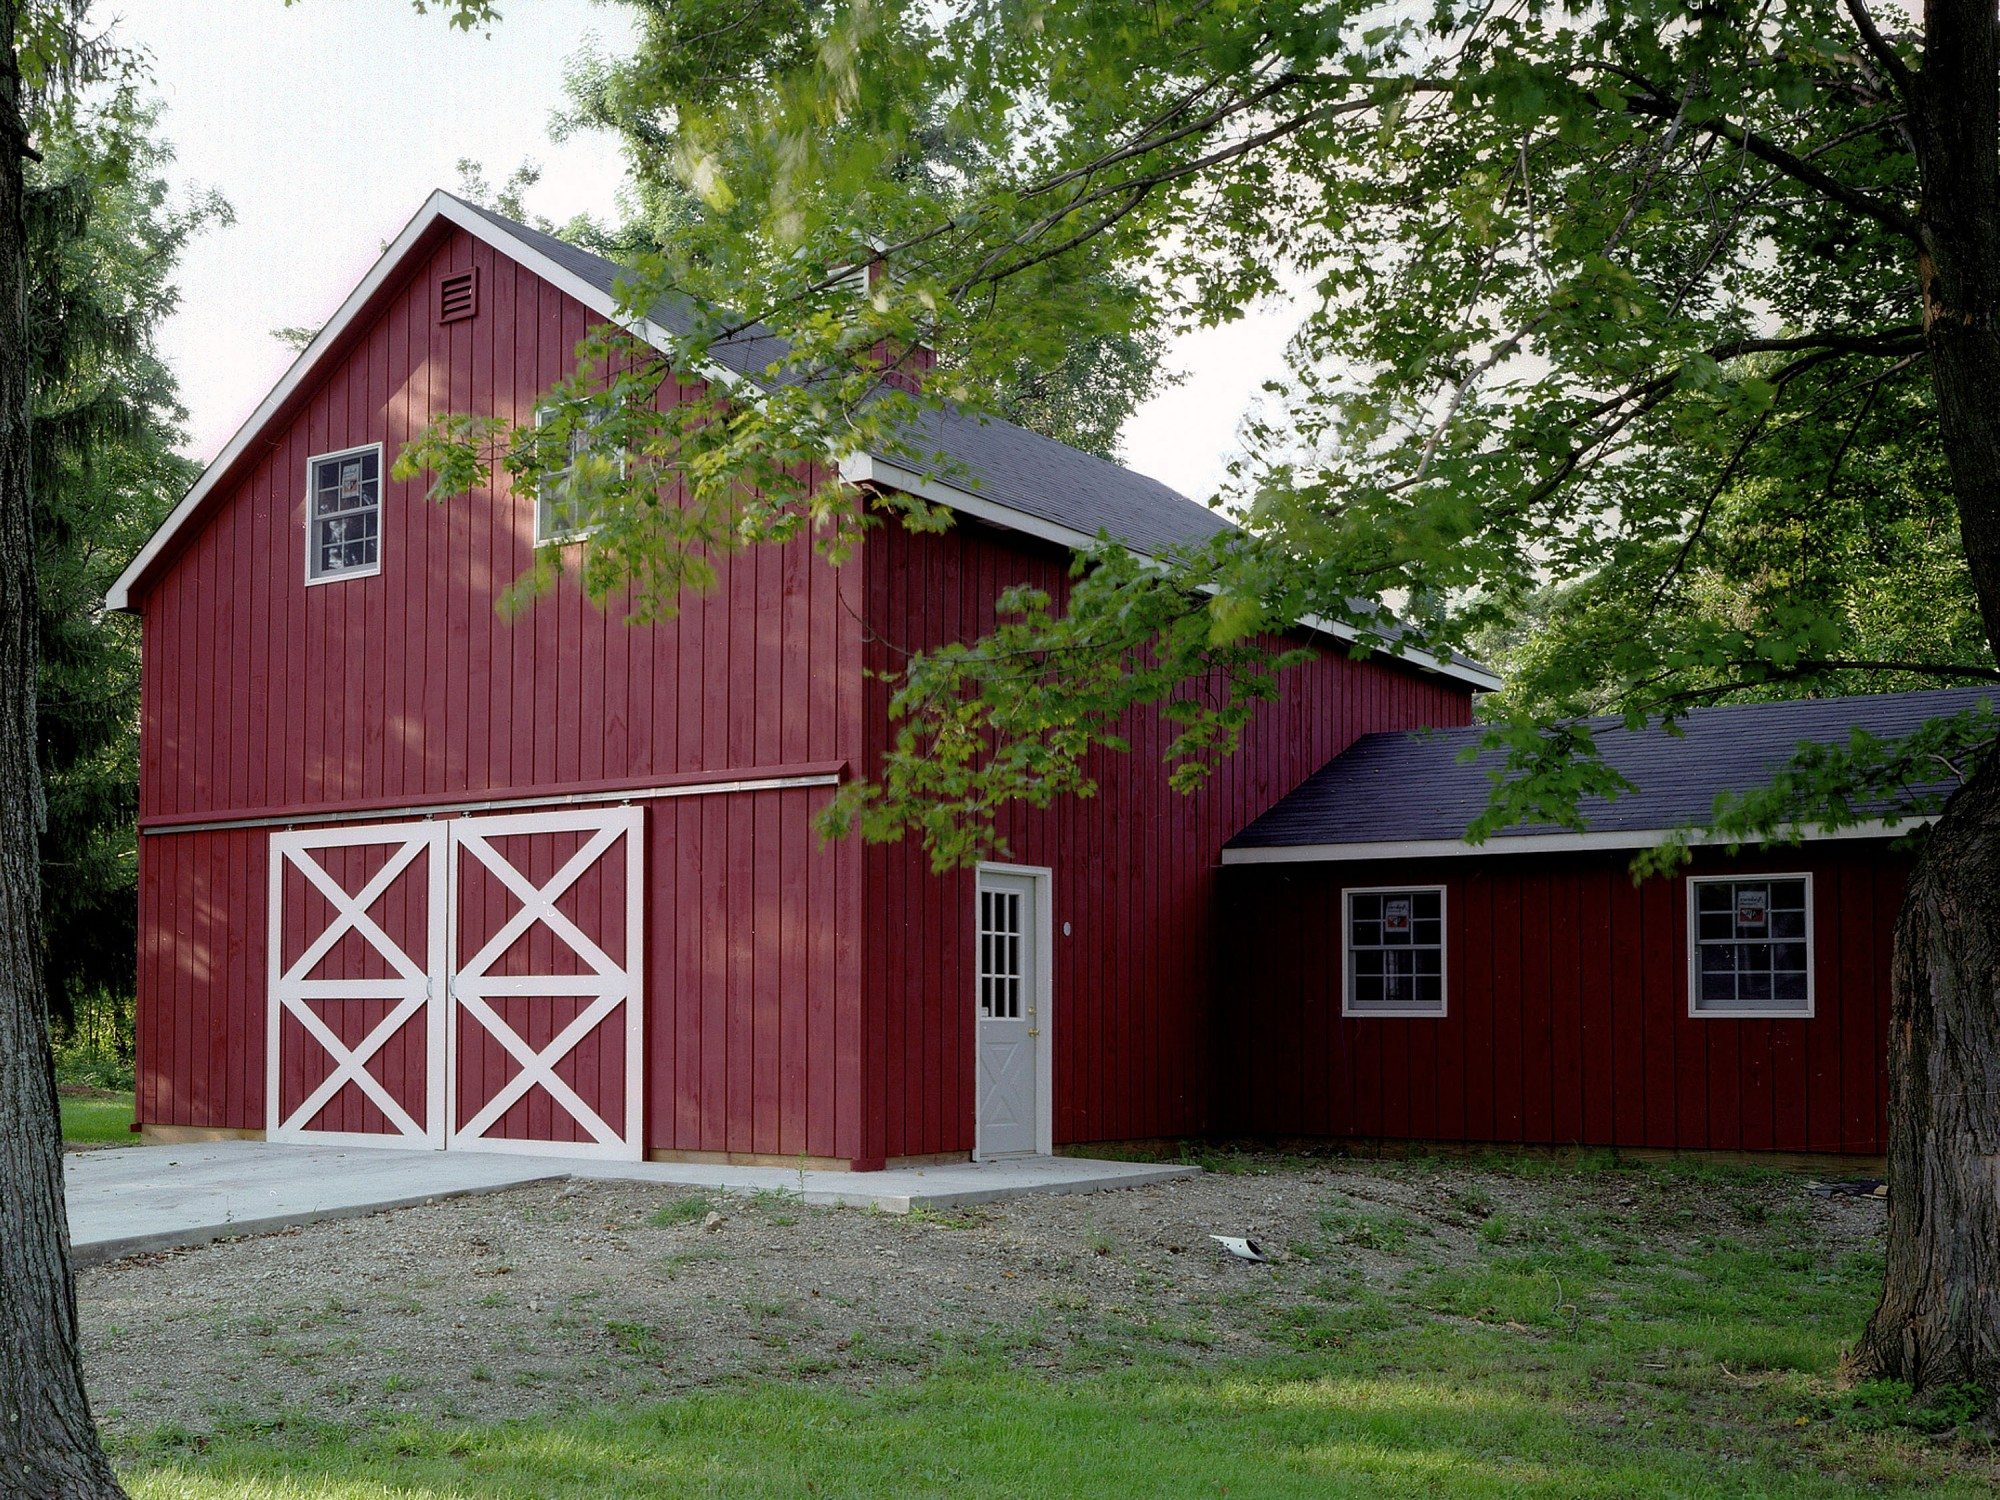 Garages - Old Town Barns